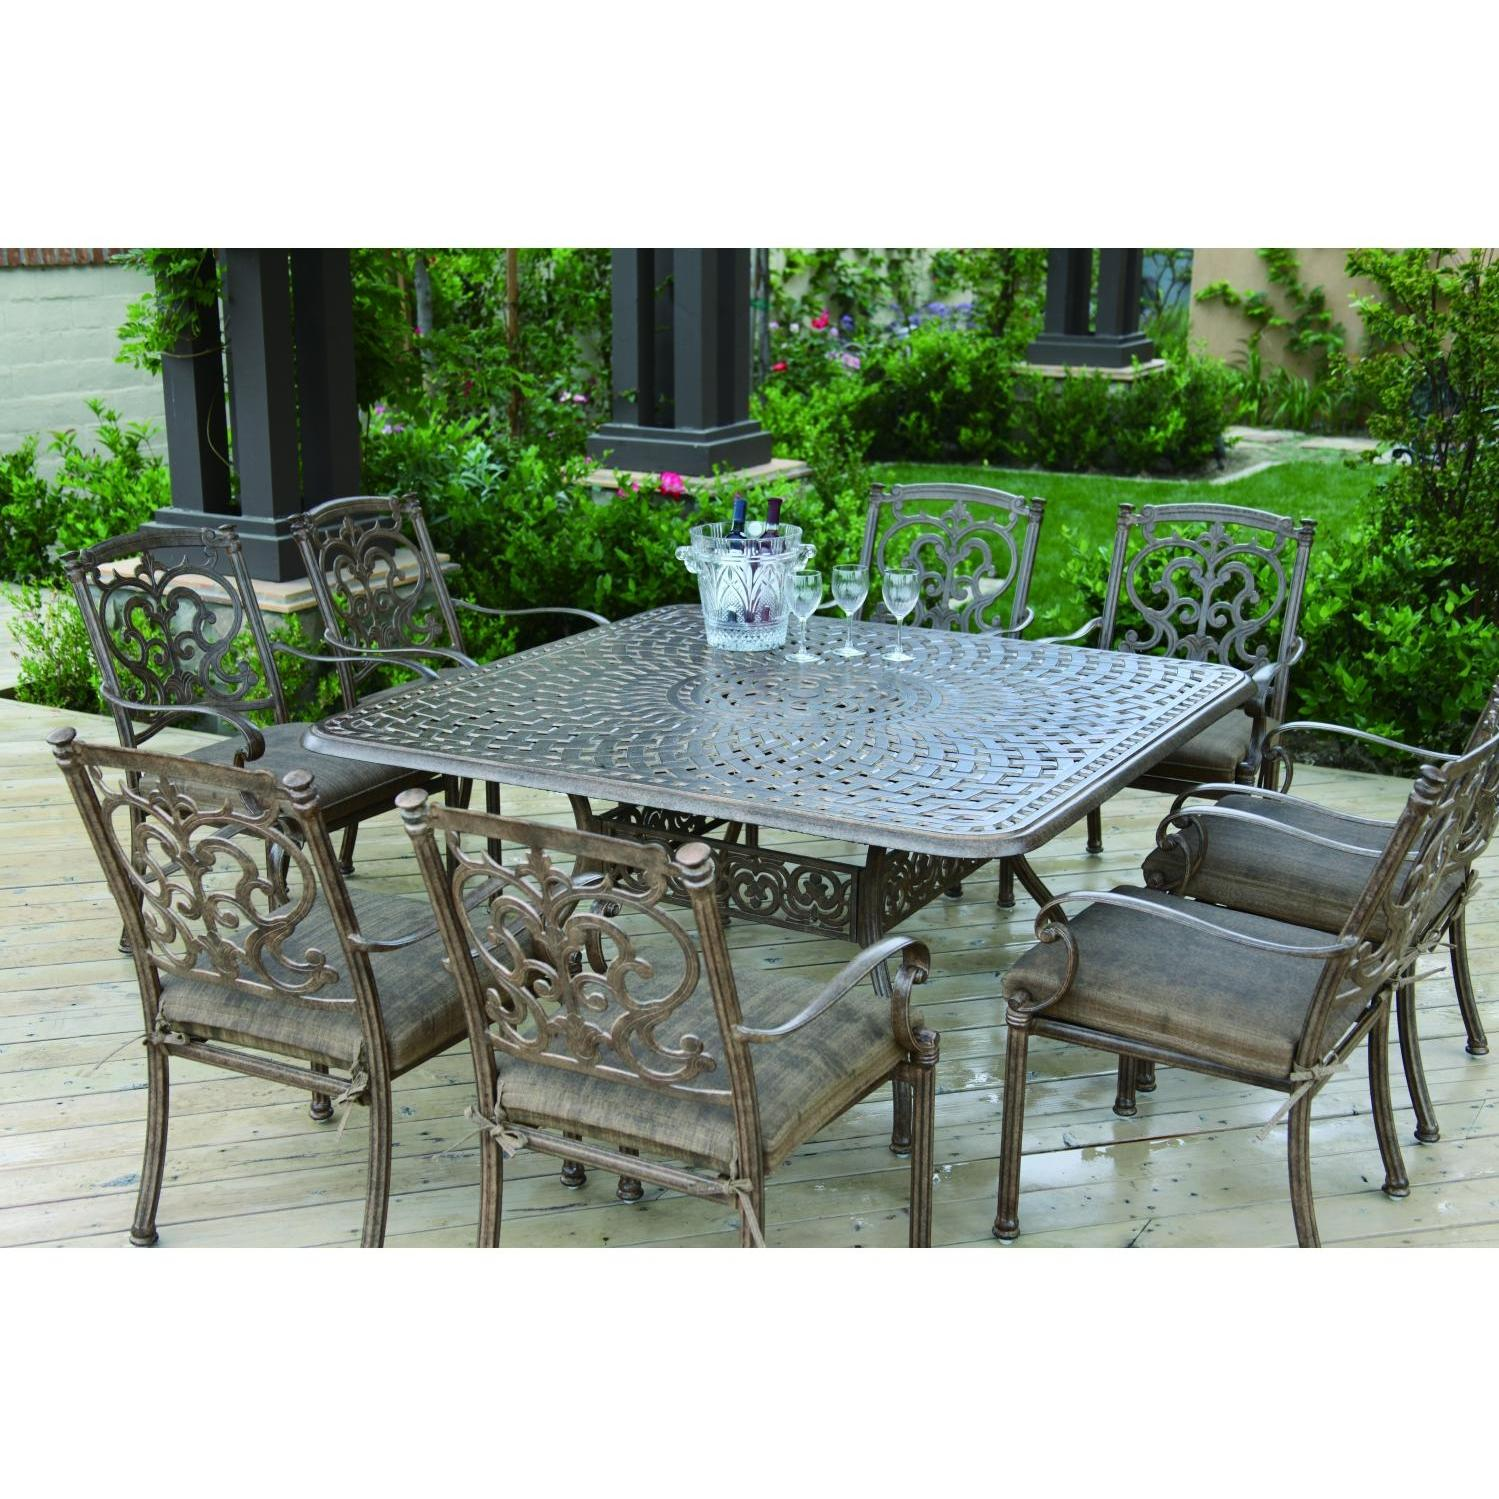 Darlee Santa Barbara 9 Piece Cast Aluminum Patio Dining Set ...